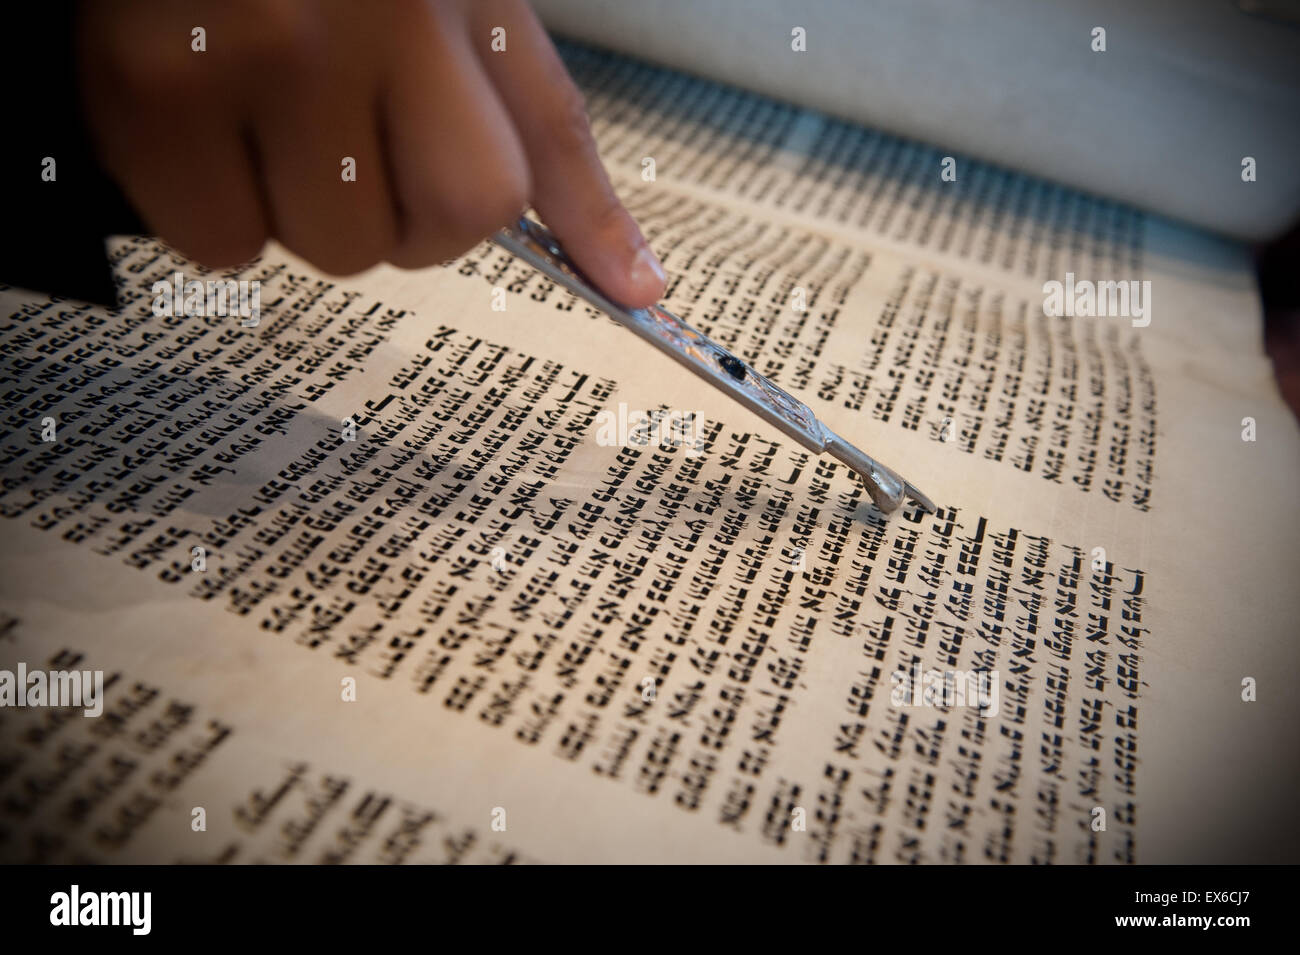 Taken during a bar mitzvah ceremony in a synagogue - Stock Image